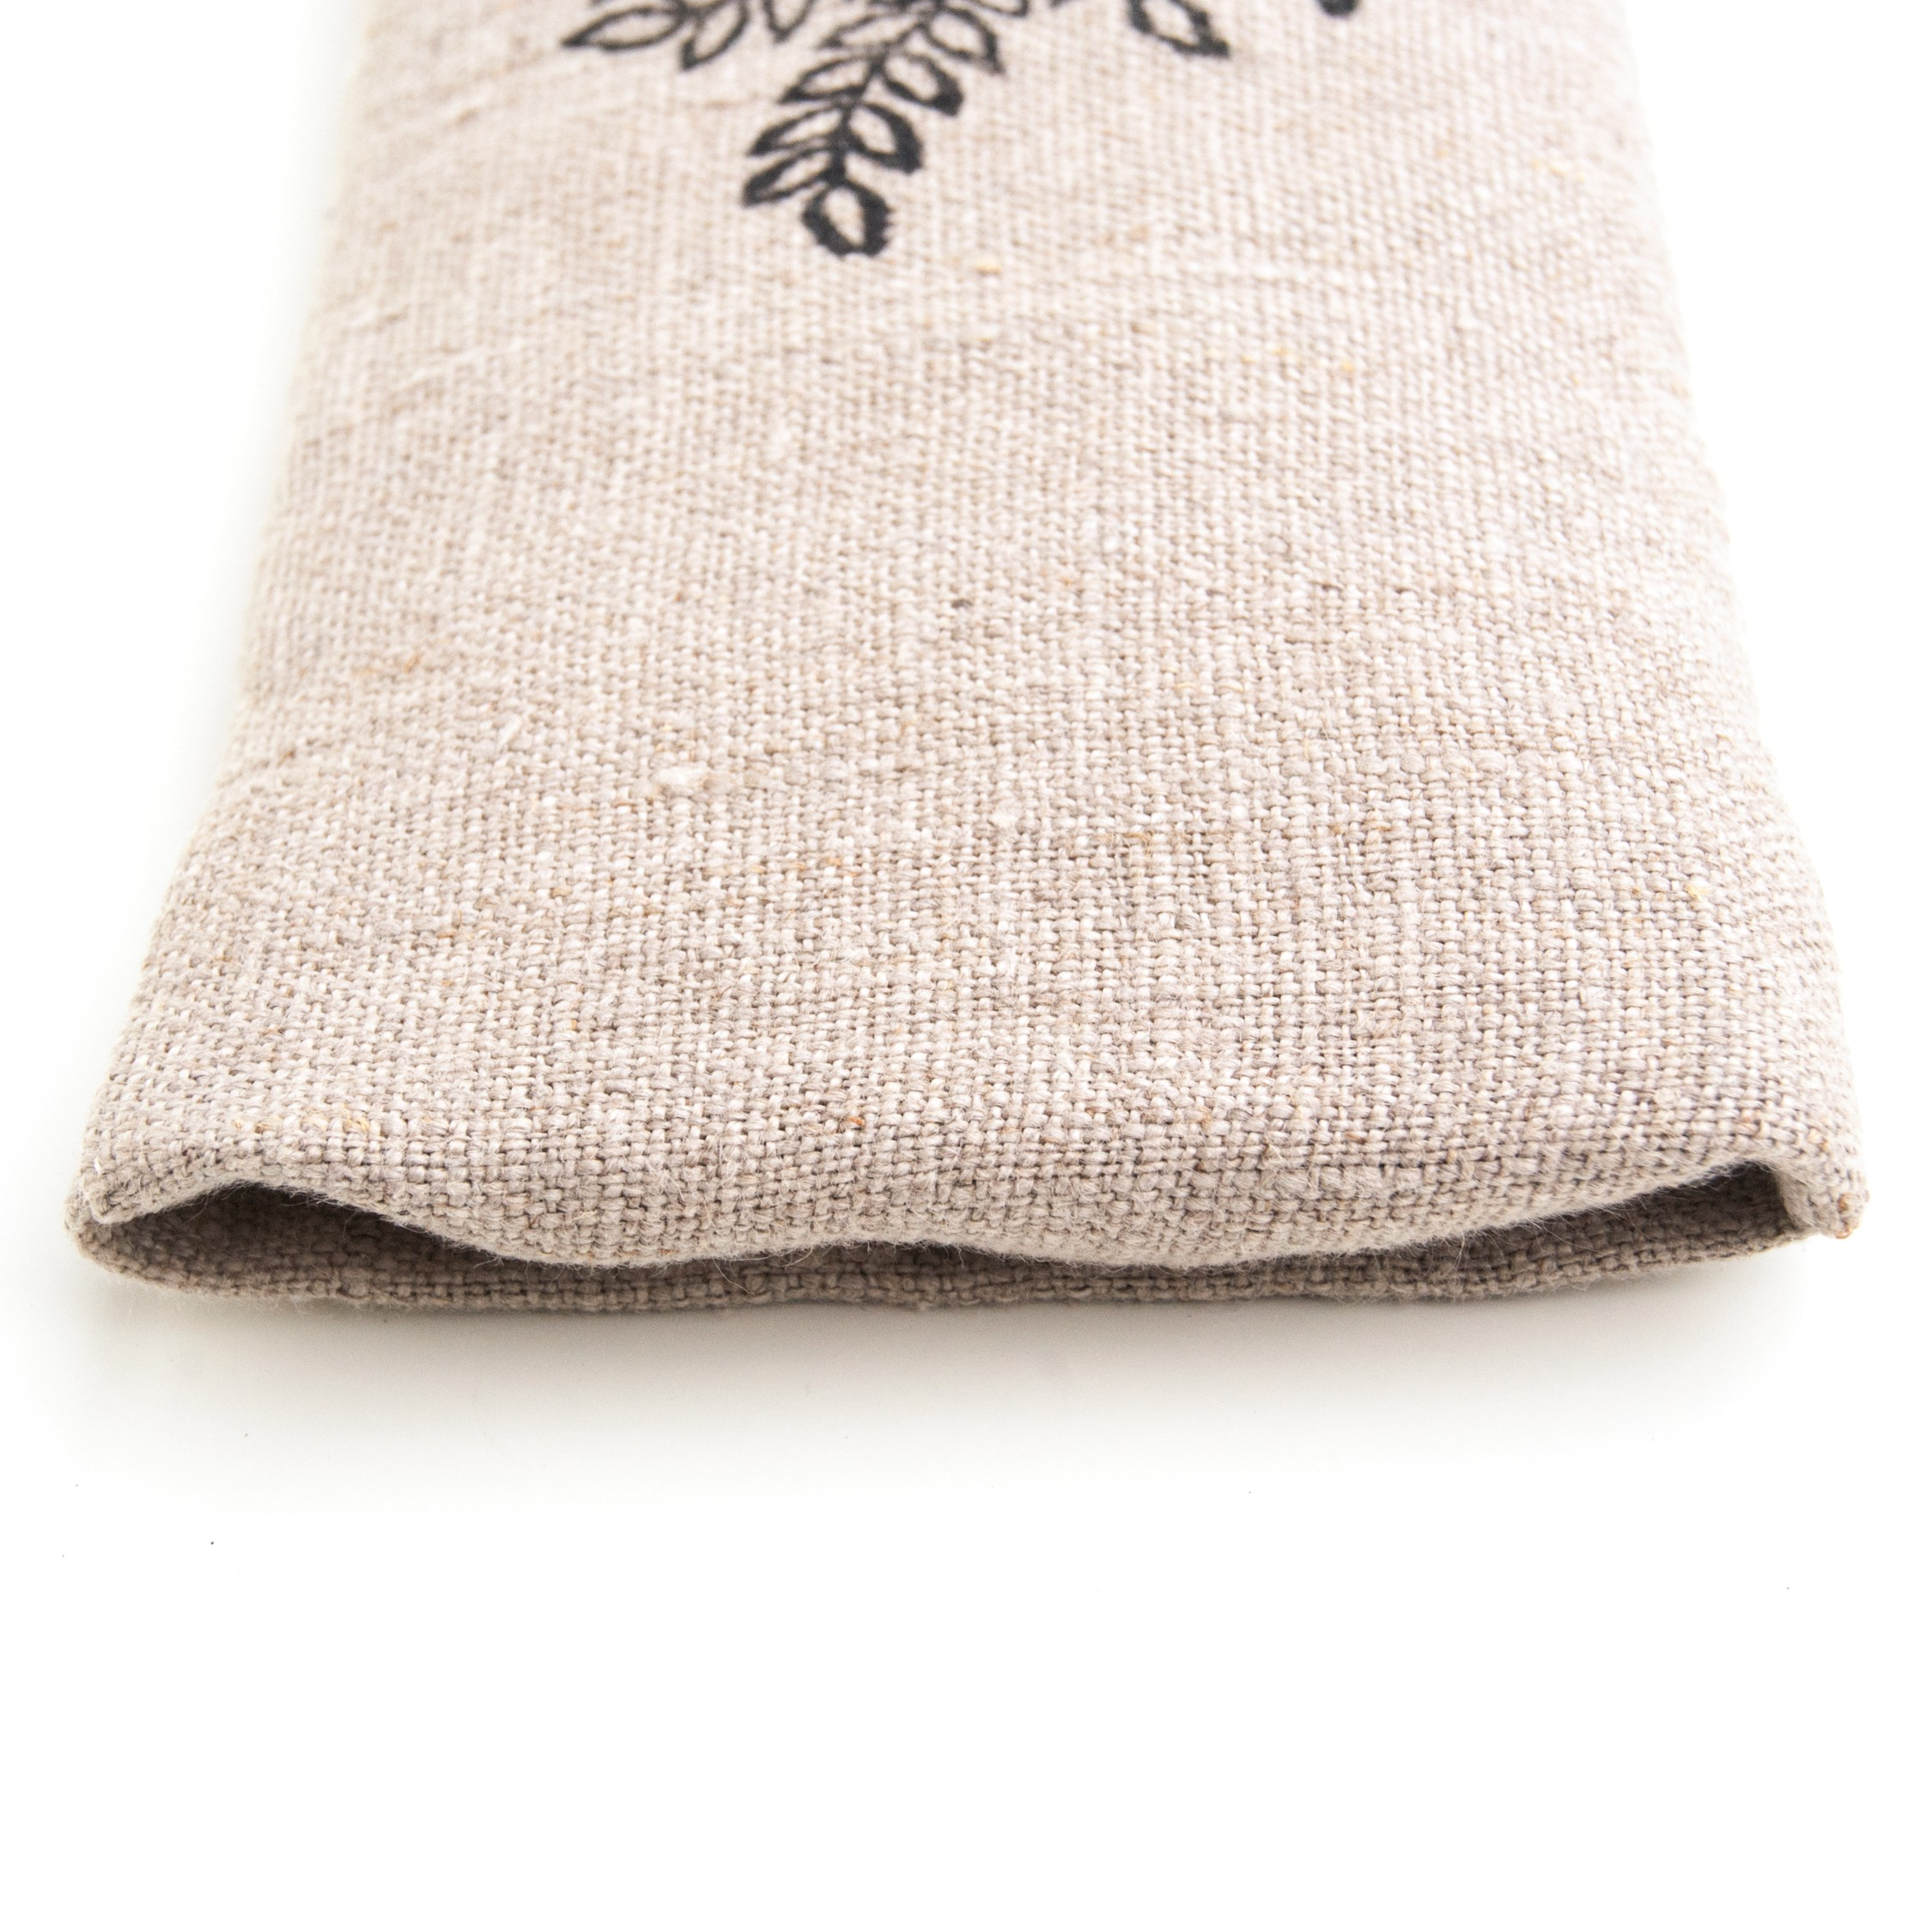 Envelope closure on the amethyst filled eye pillow